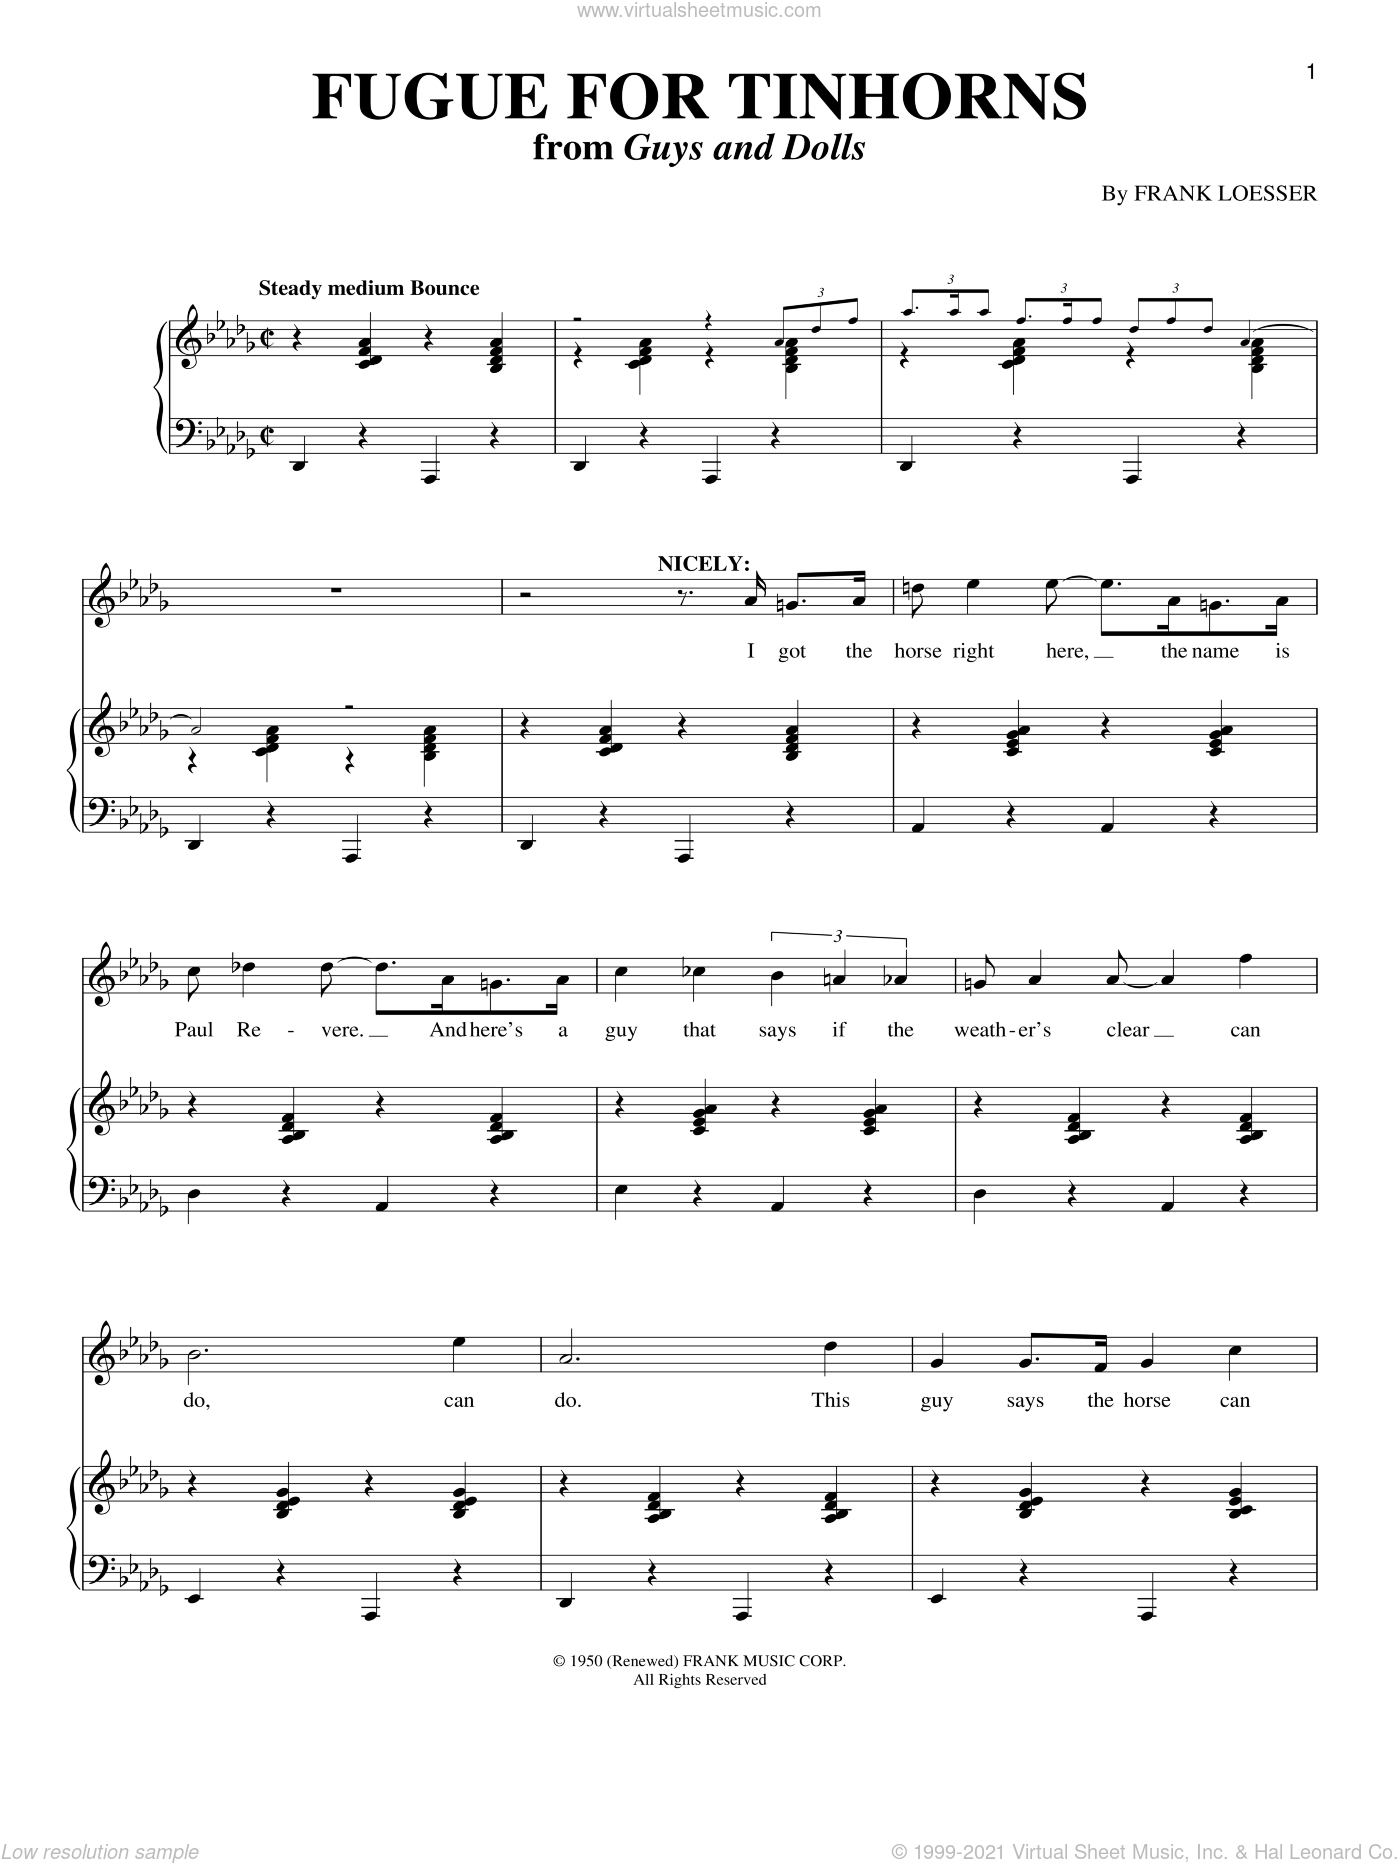 Fugue For Tinhorns sheet music for voice and piano by Frank Loesser, intermediate skill level